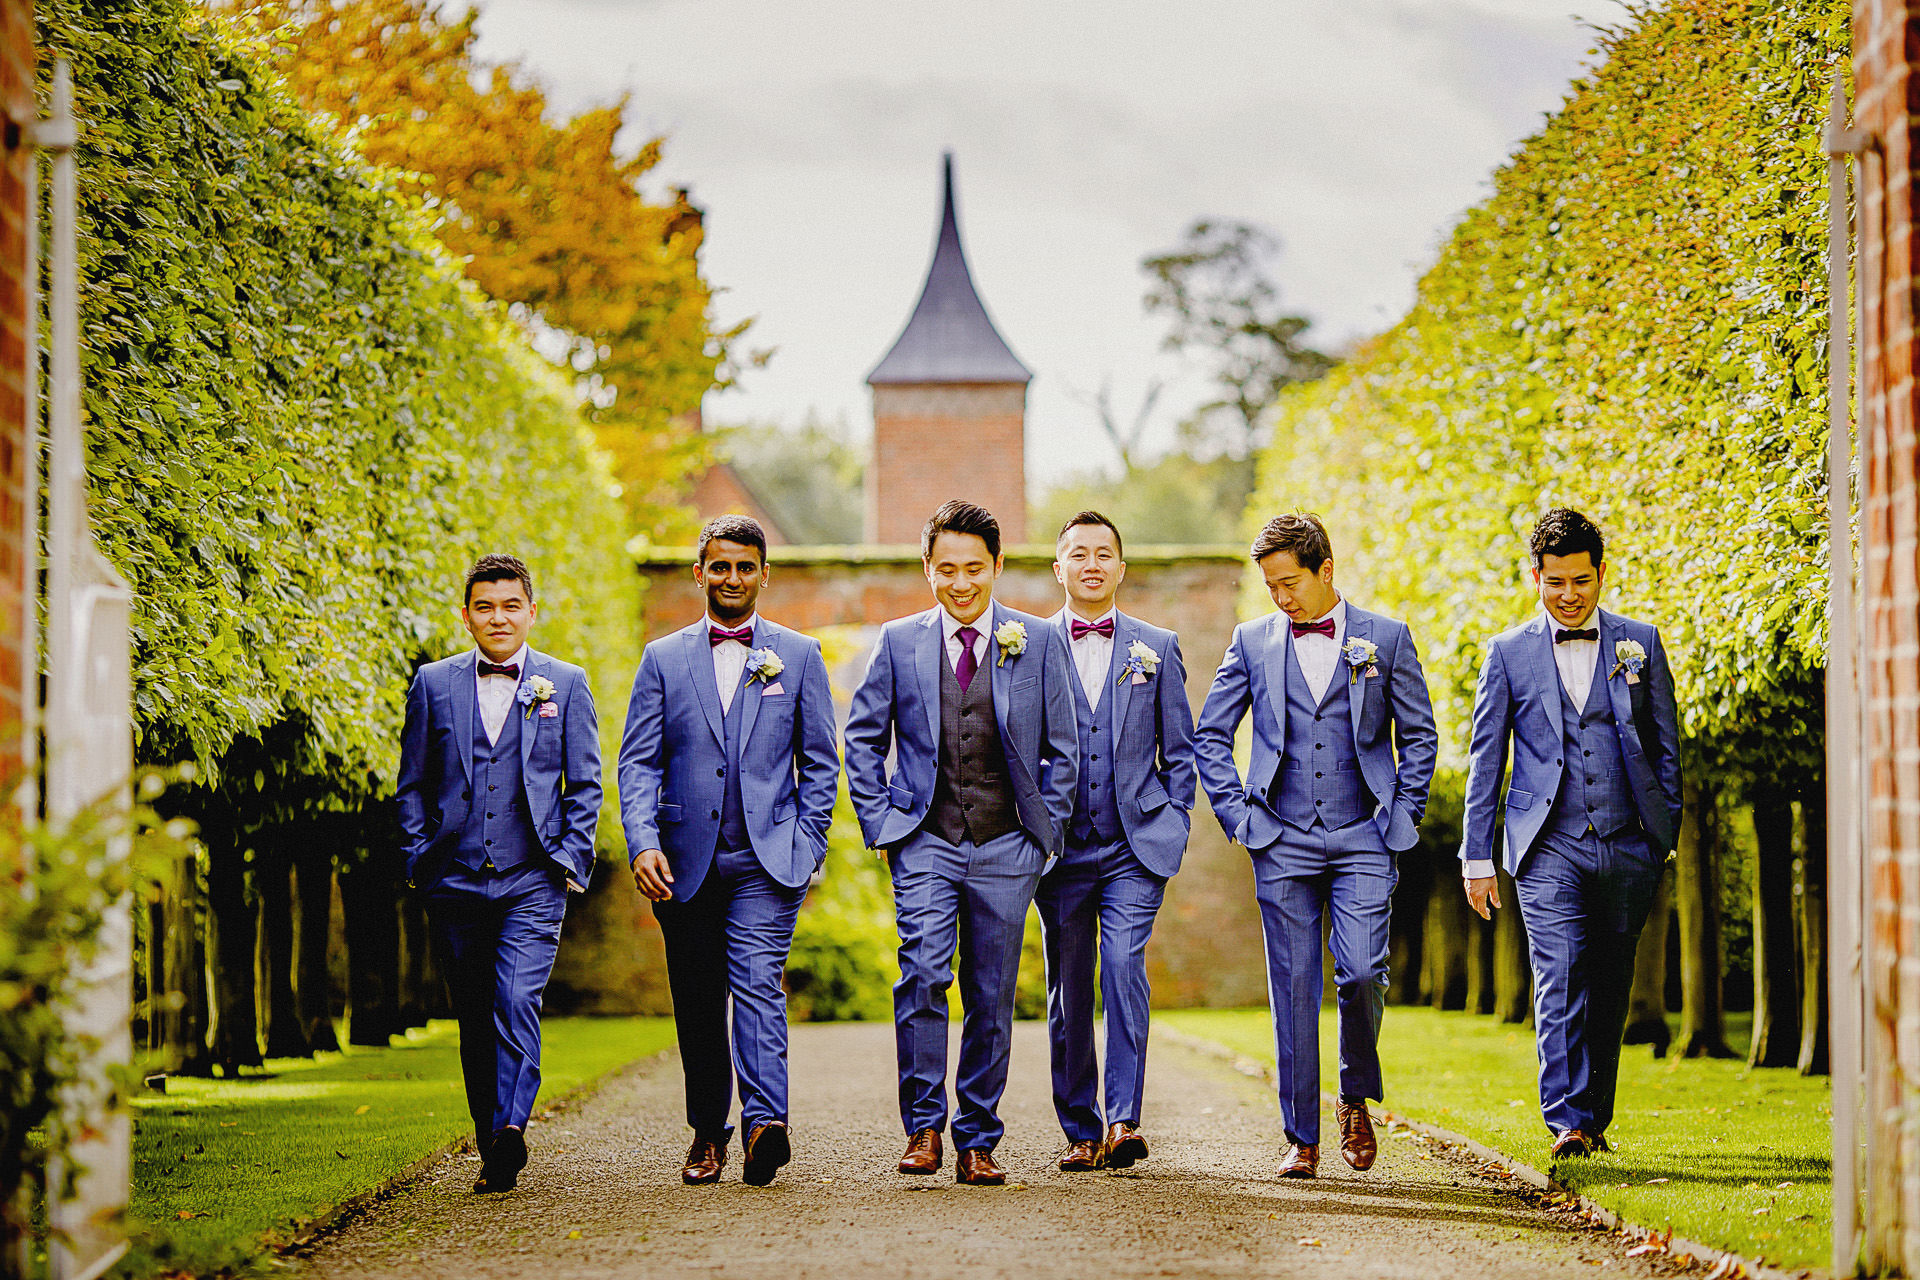 groomsmen arriving at the walled garden, wearing suits, blue, ties, buttonholes